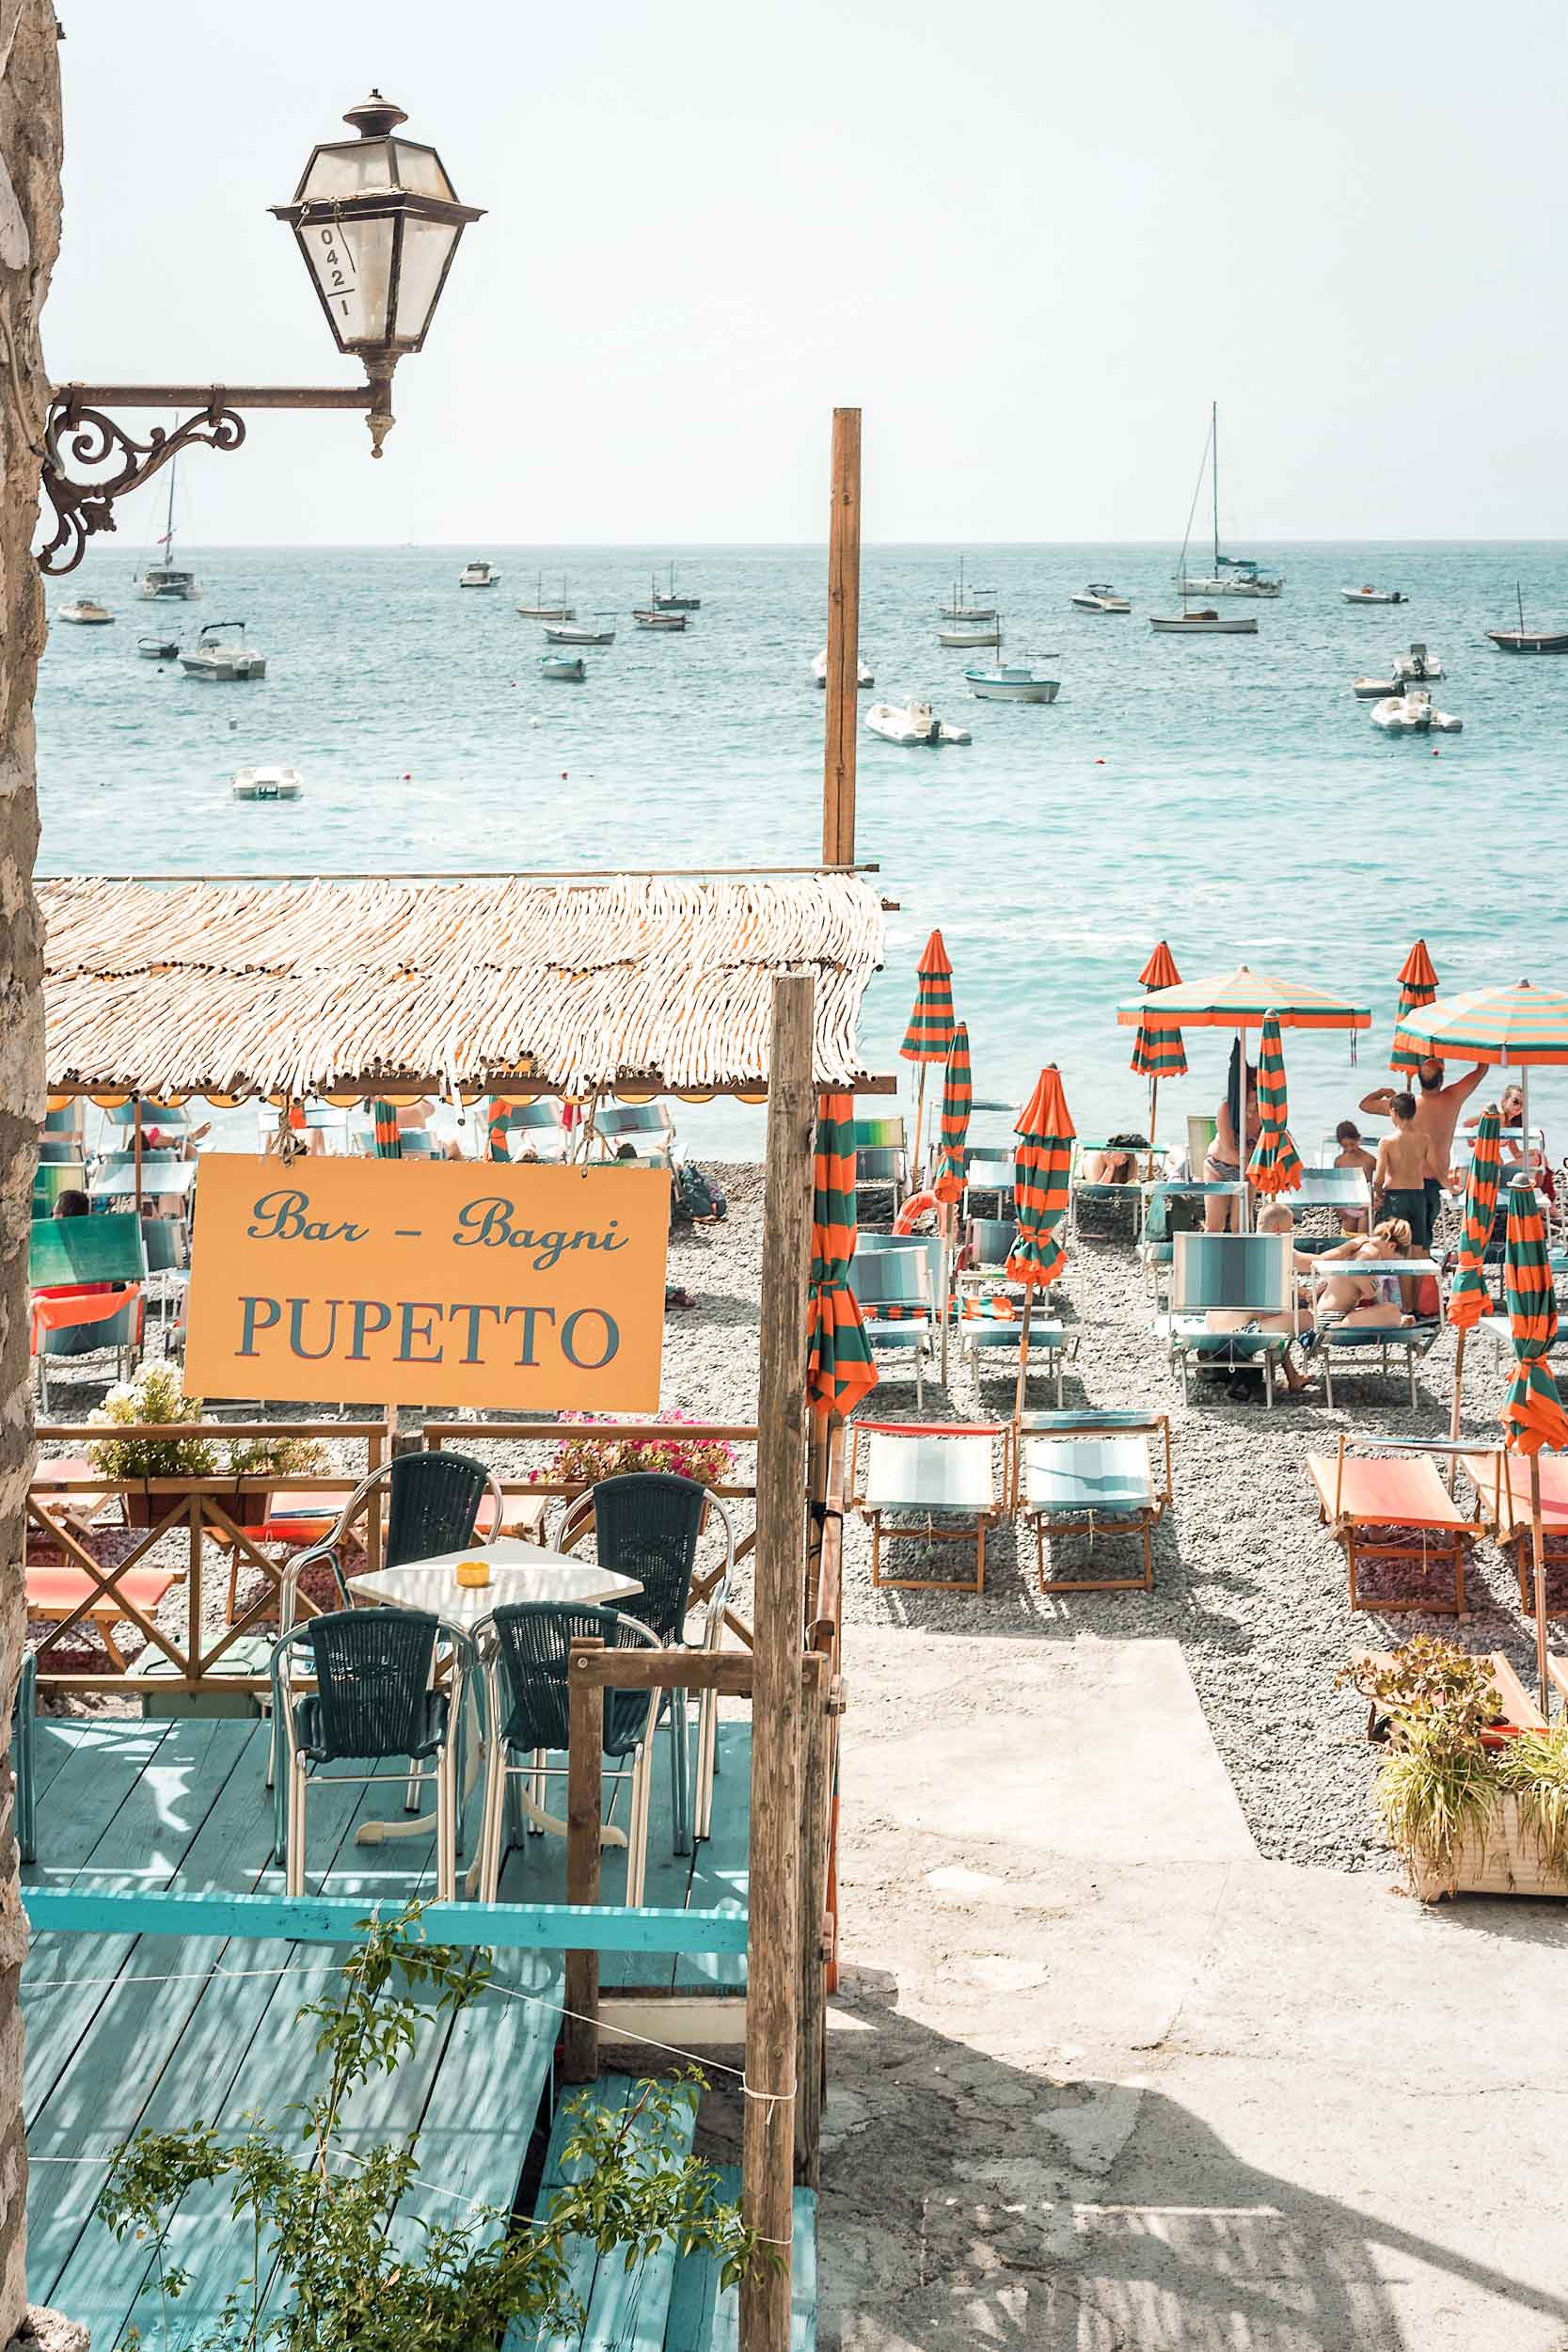 Pupetto Ristorante, a great place to have lunch while at Fornillo Beach